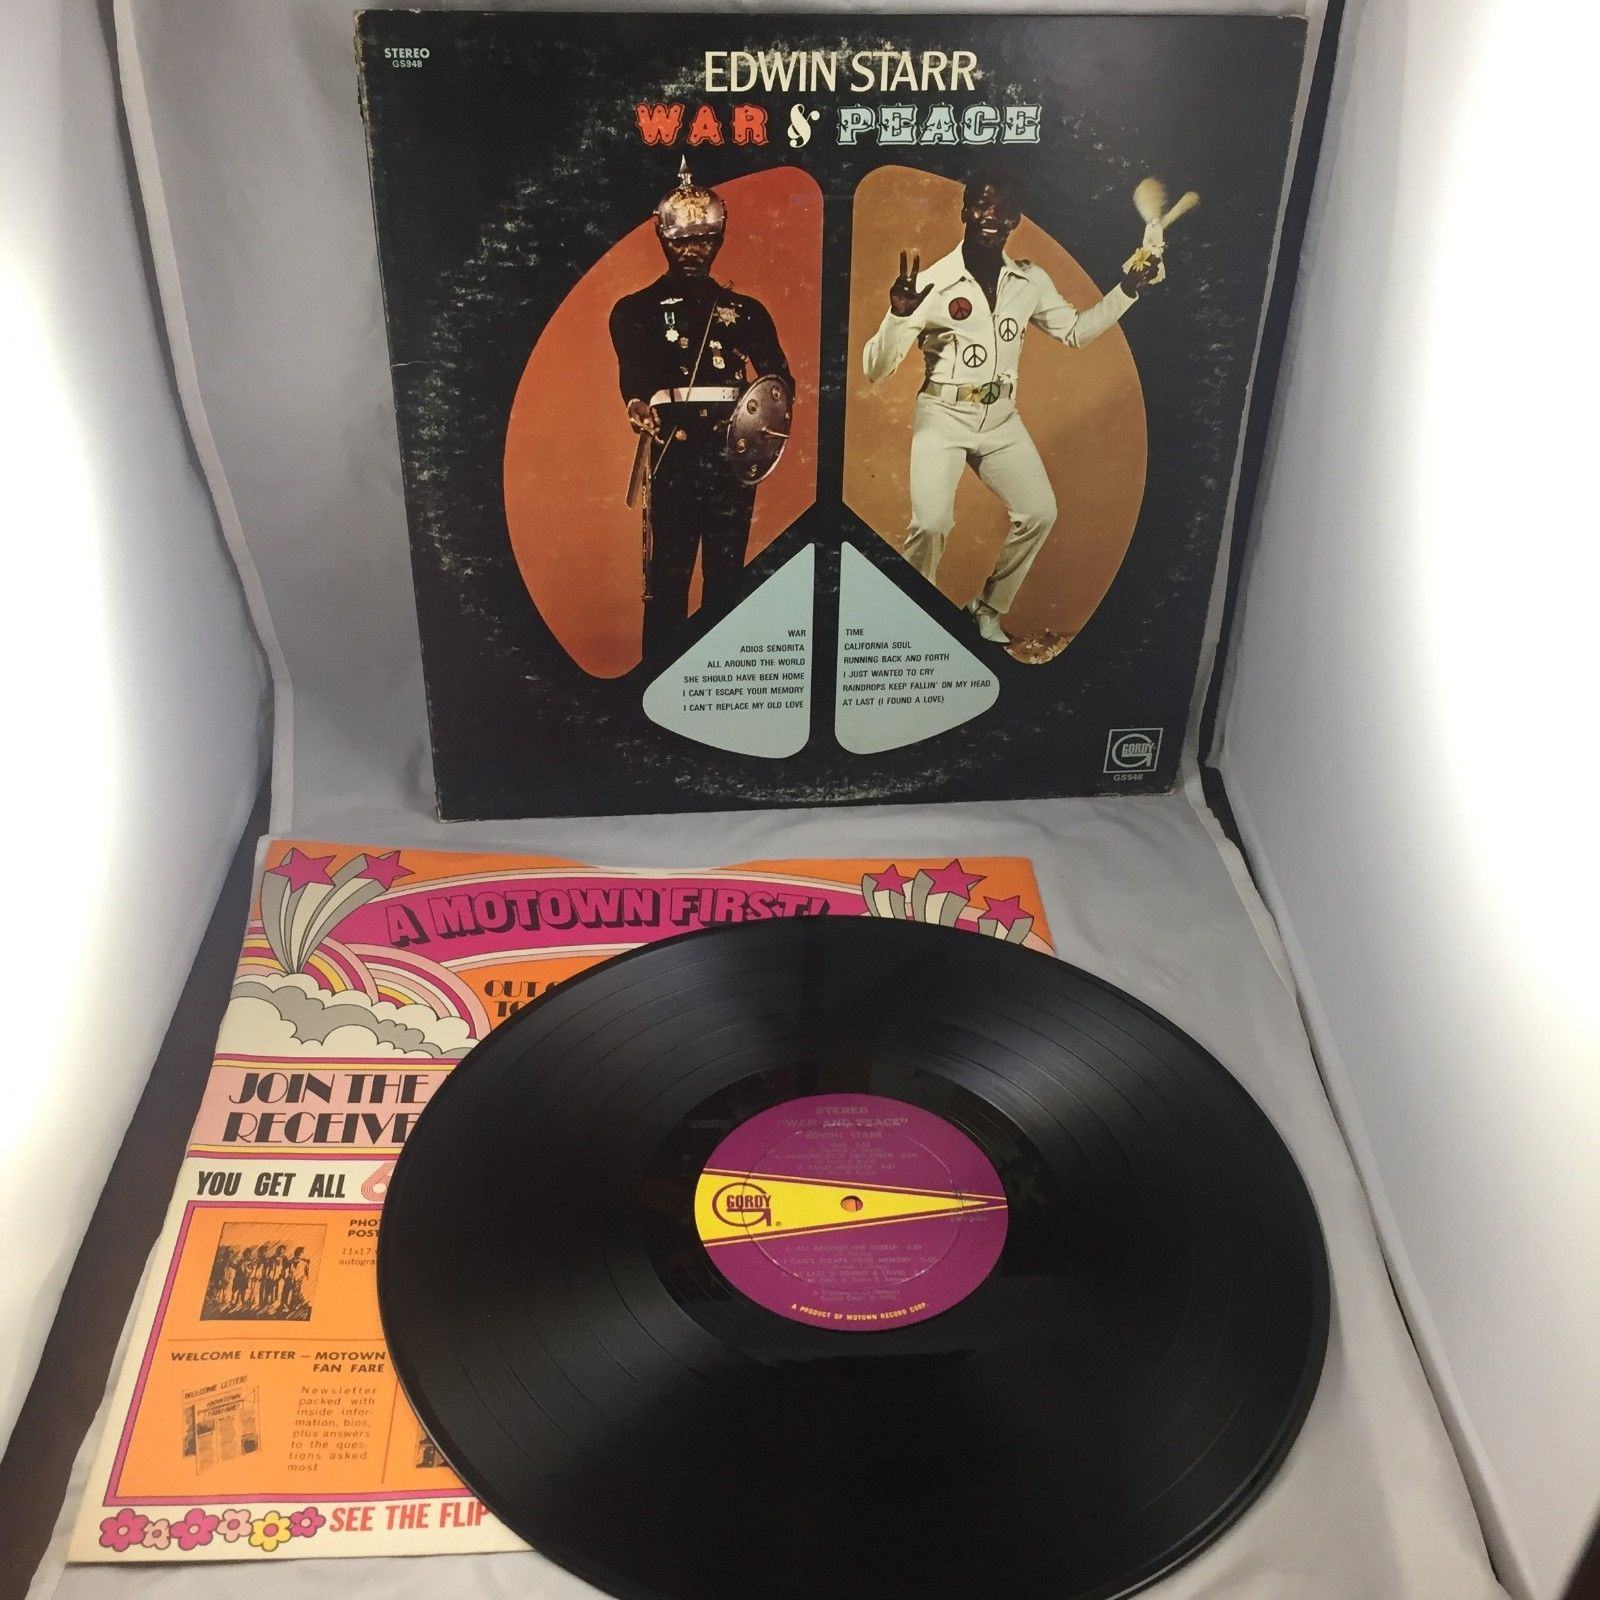 Edwin Starr, War and Peace, Vinyl Album Gordy Records GLPS 948, 1970